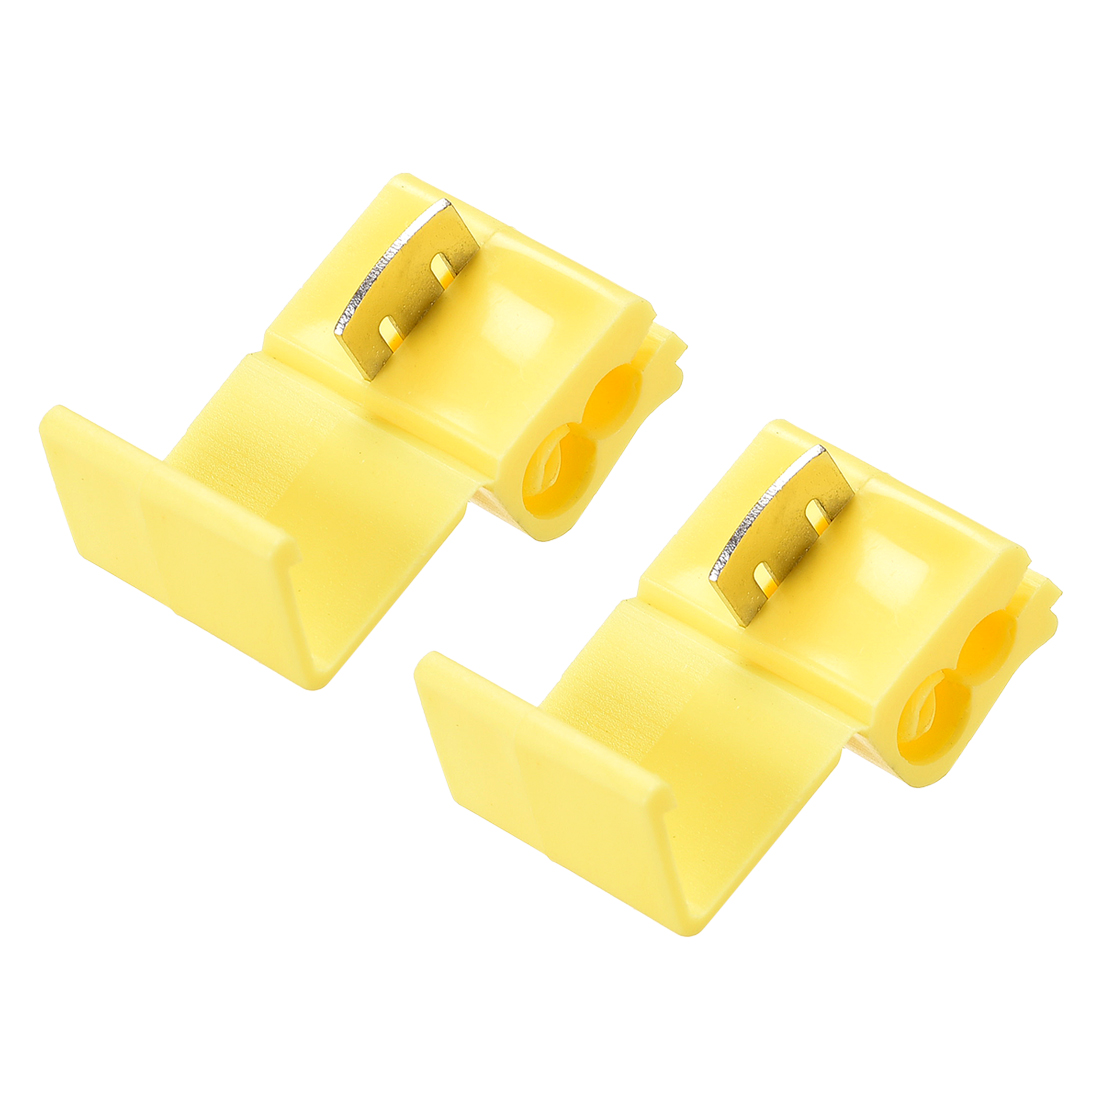 Wire Splice Connector Snap Wire Connector Yellow for 12-10 AWG 2 Pcs